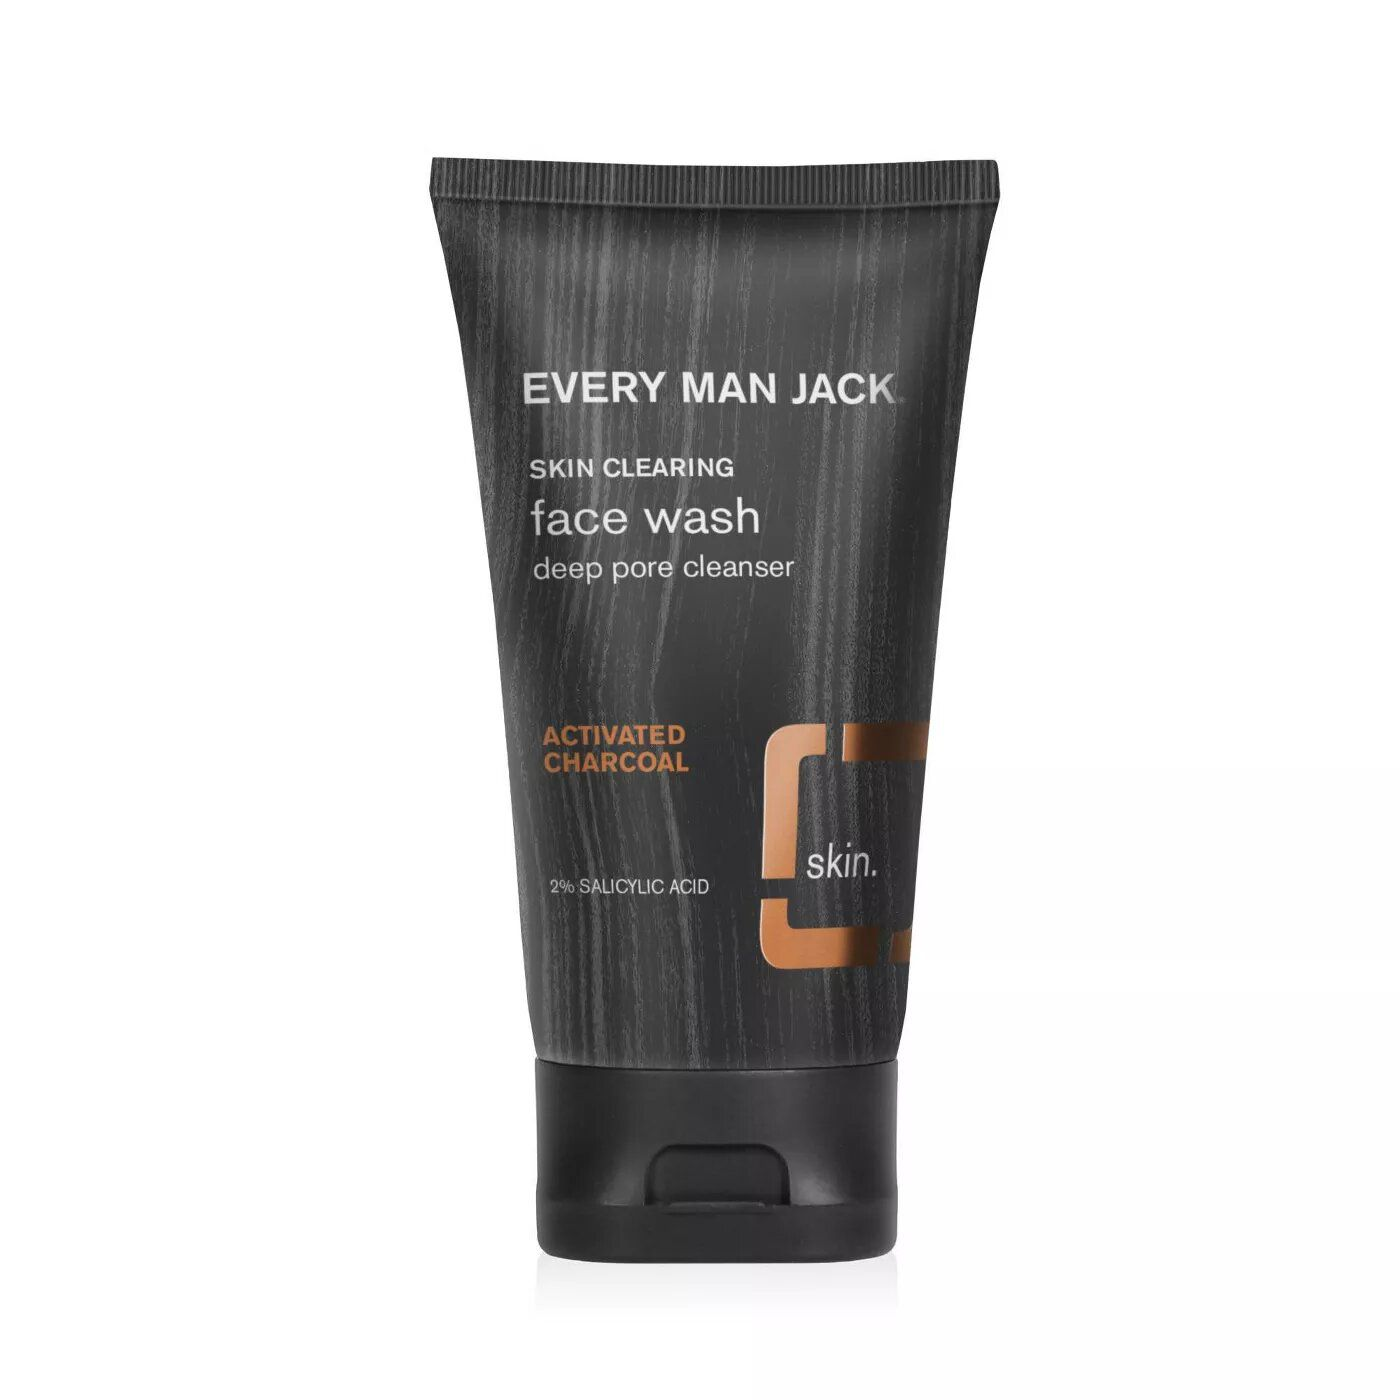 Every Man Jack Skin Clearing Activated Charcoal Face Wash